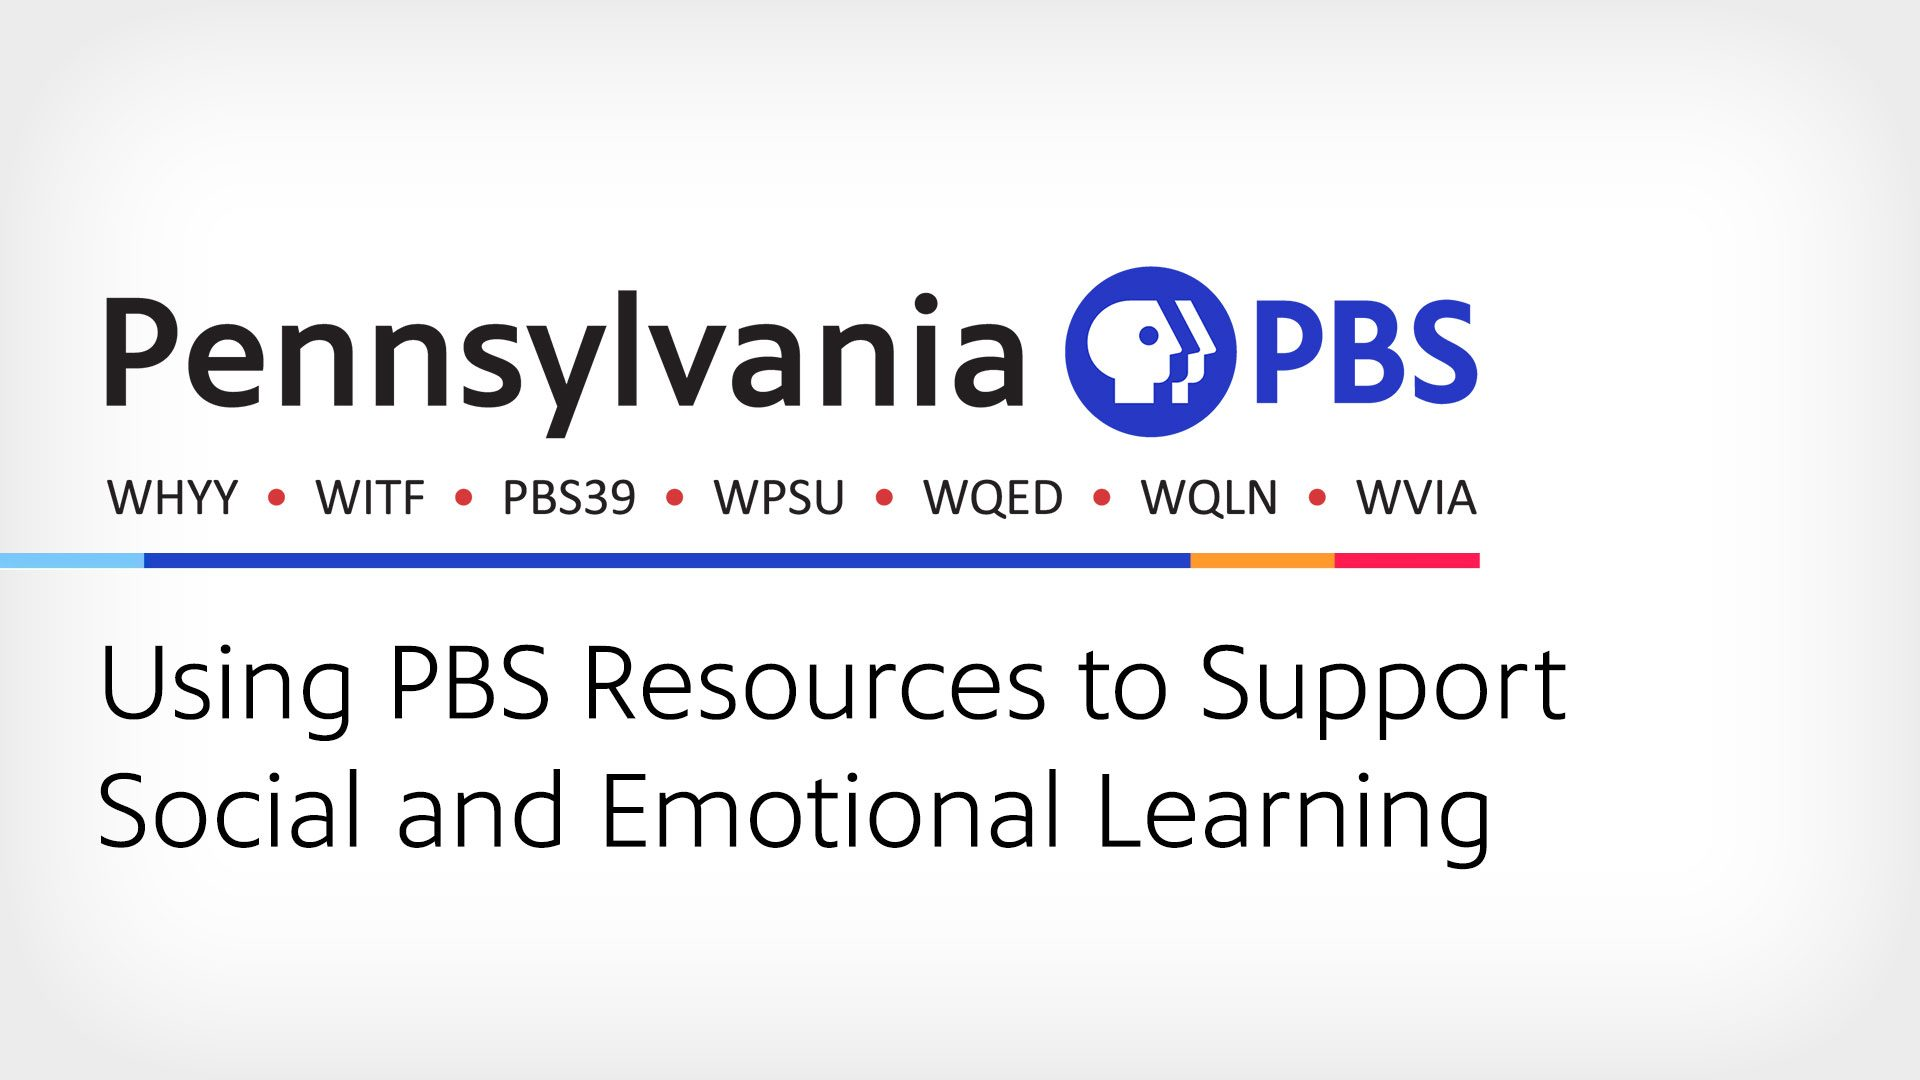 Using PBS Resources to Support Social and Emotional Learning